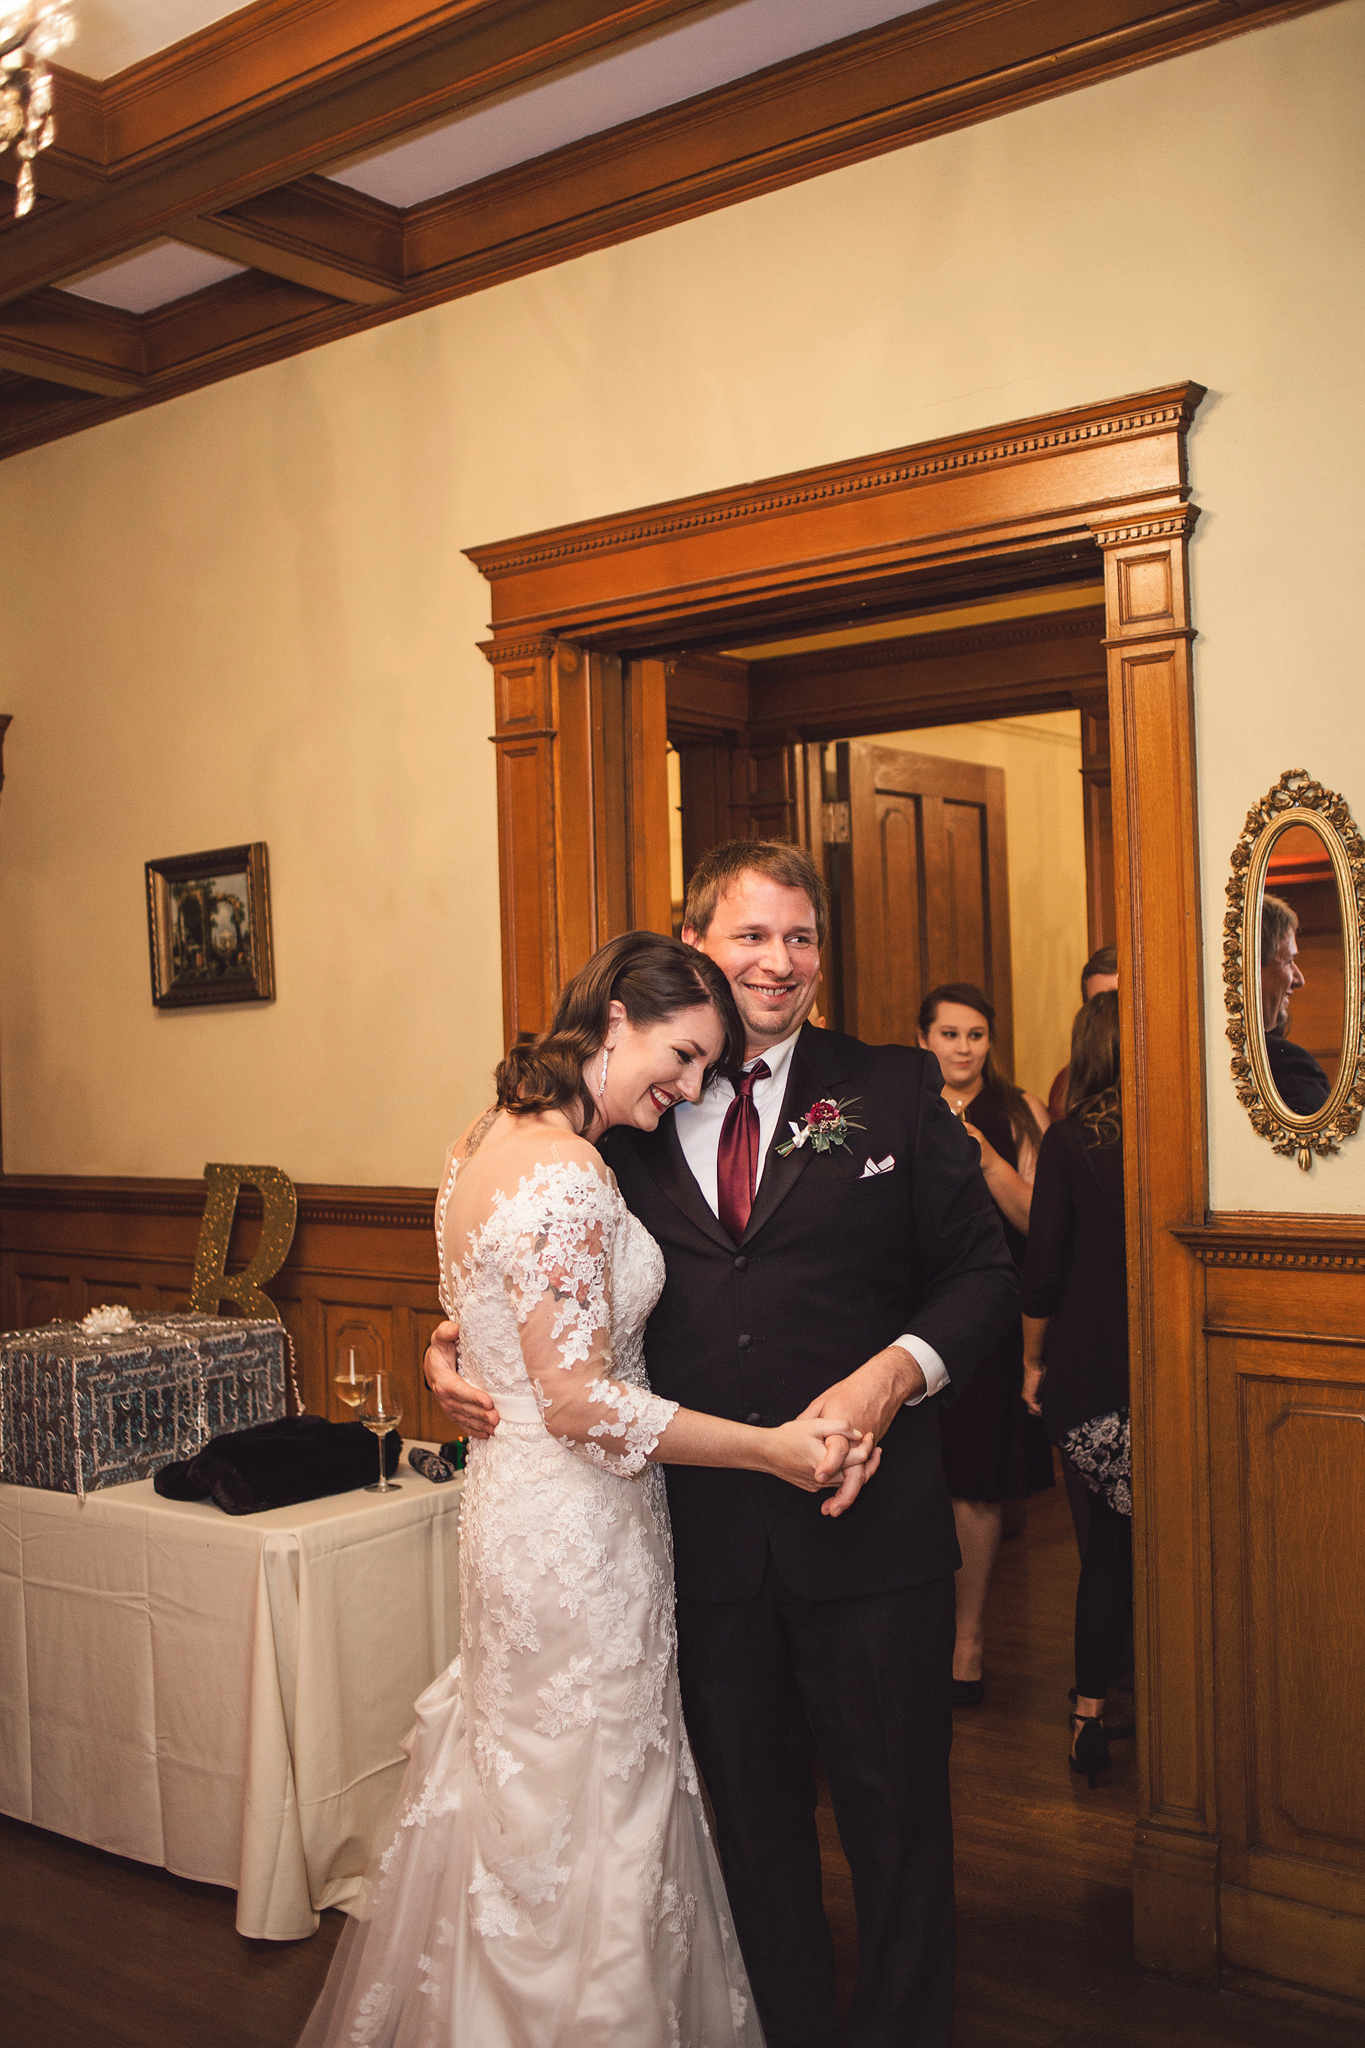 Jenna and Tim - Cincinnati Wedding Photography at Hauck Mansion (72).jpg